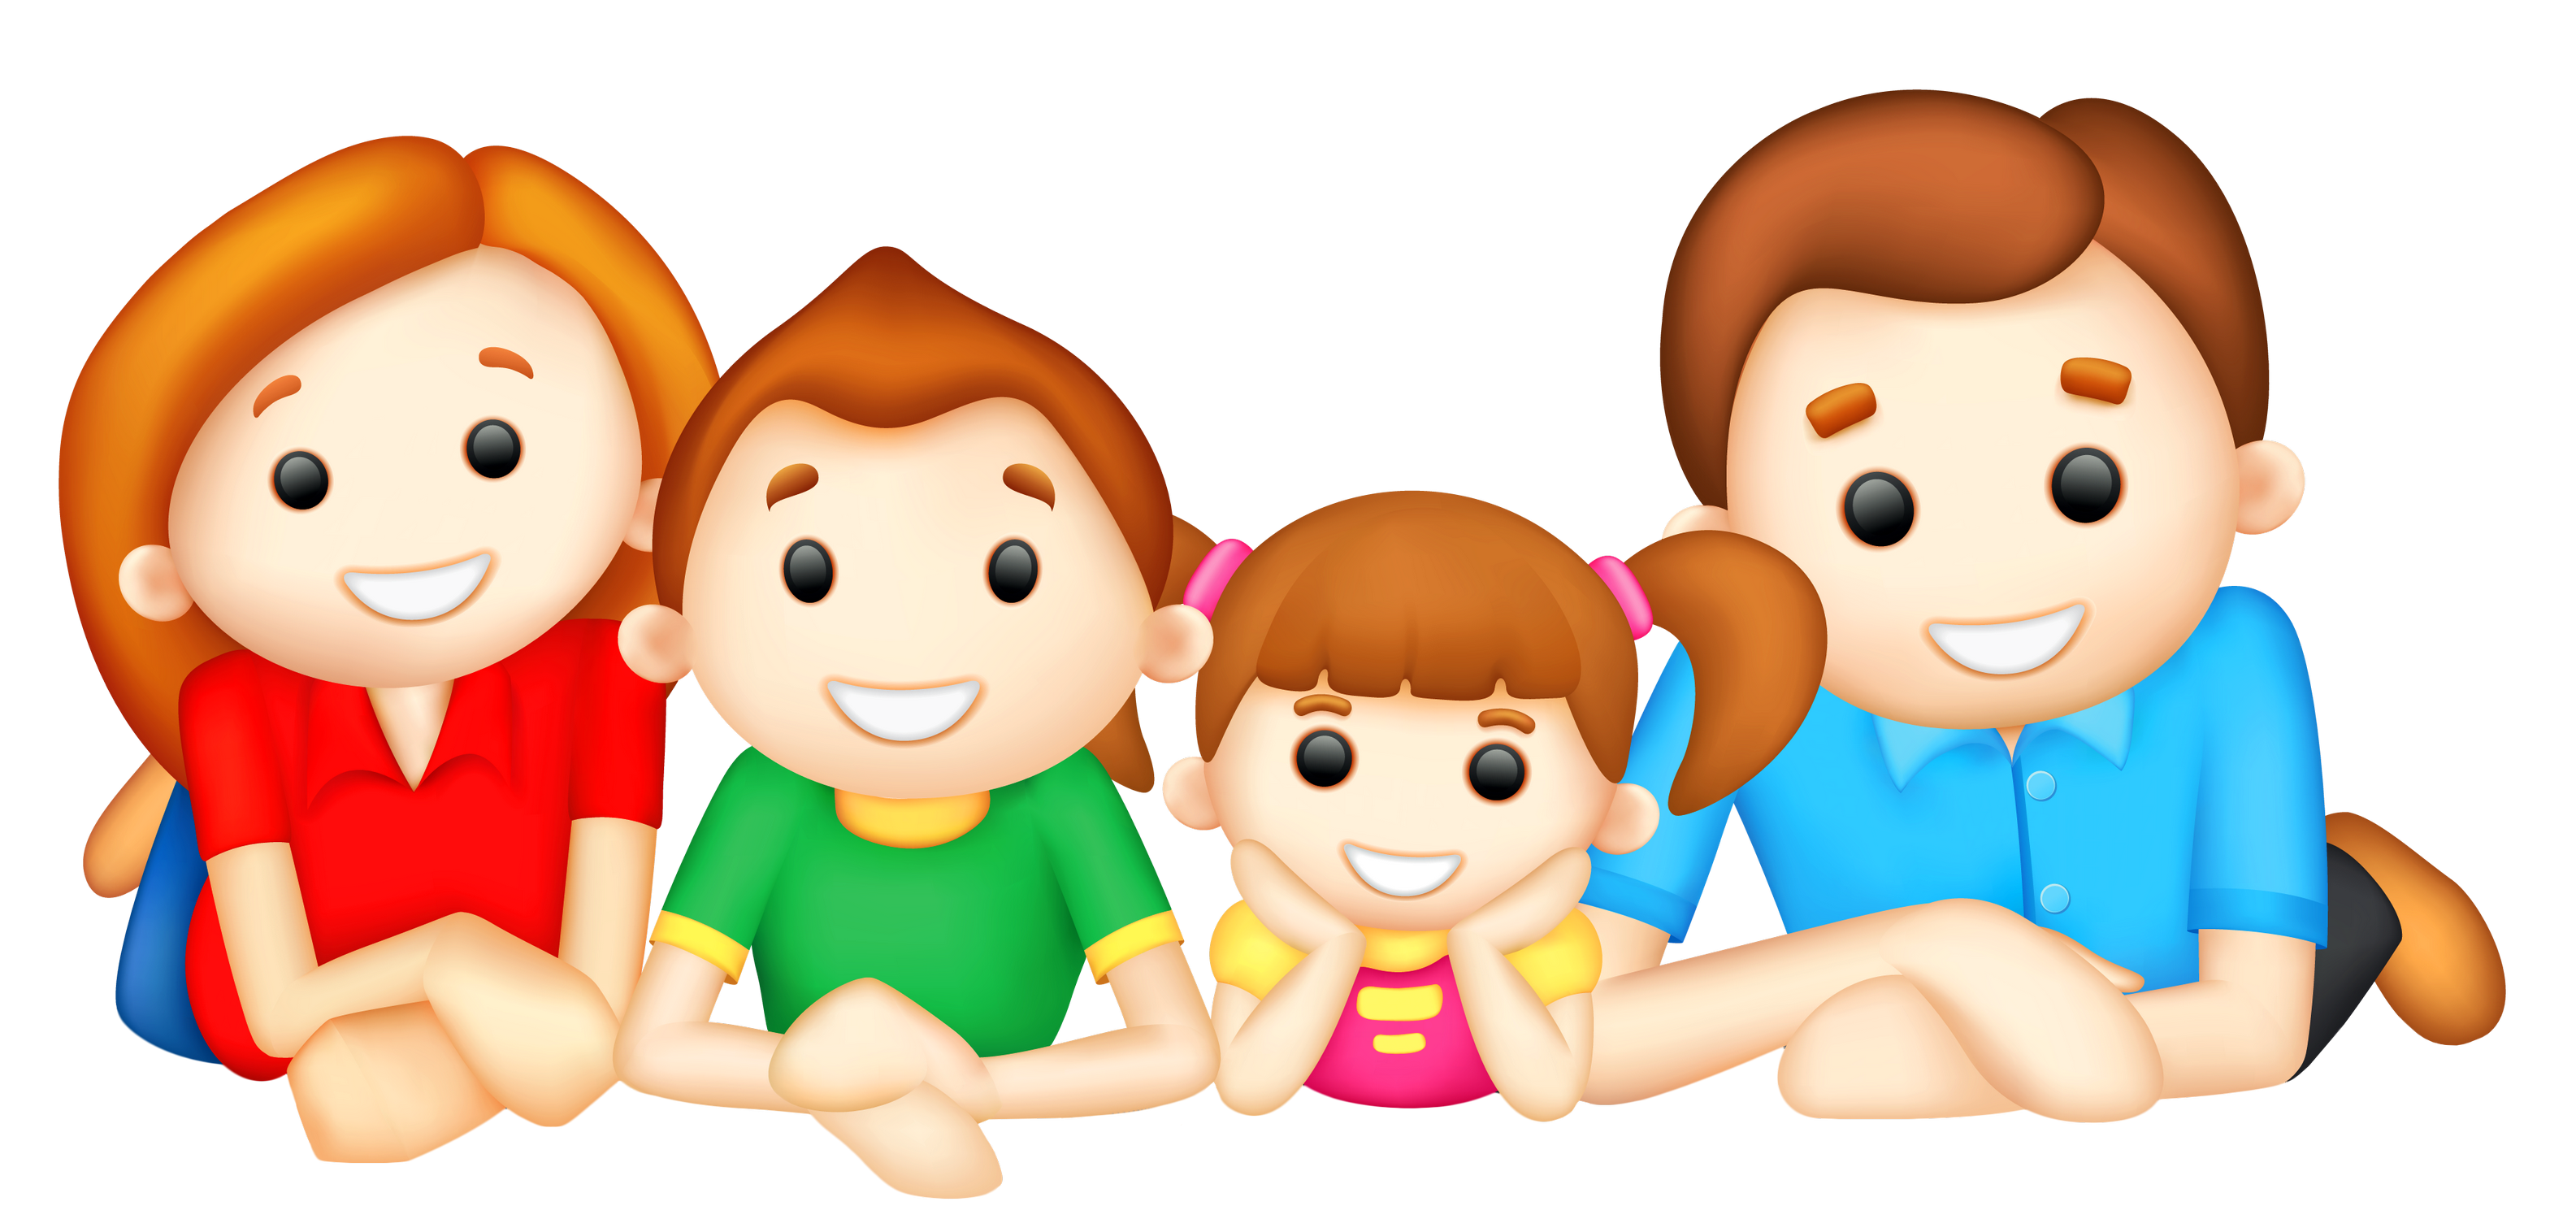 Grandparents clipart extended family. Pin by tedi on